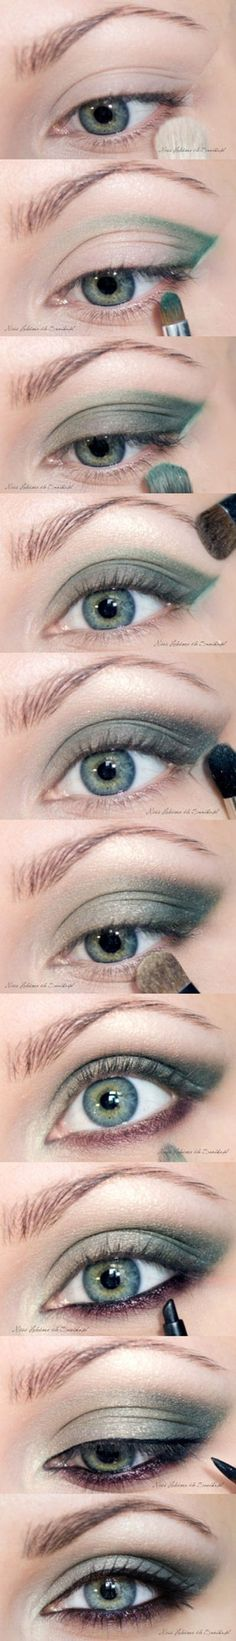 Make up – Blog Pitacos e Achados - Acesse: https://pitacoseachados.wordpress.com…